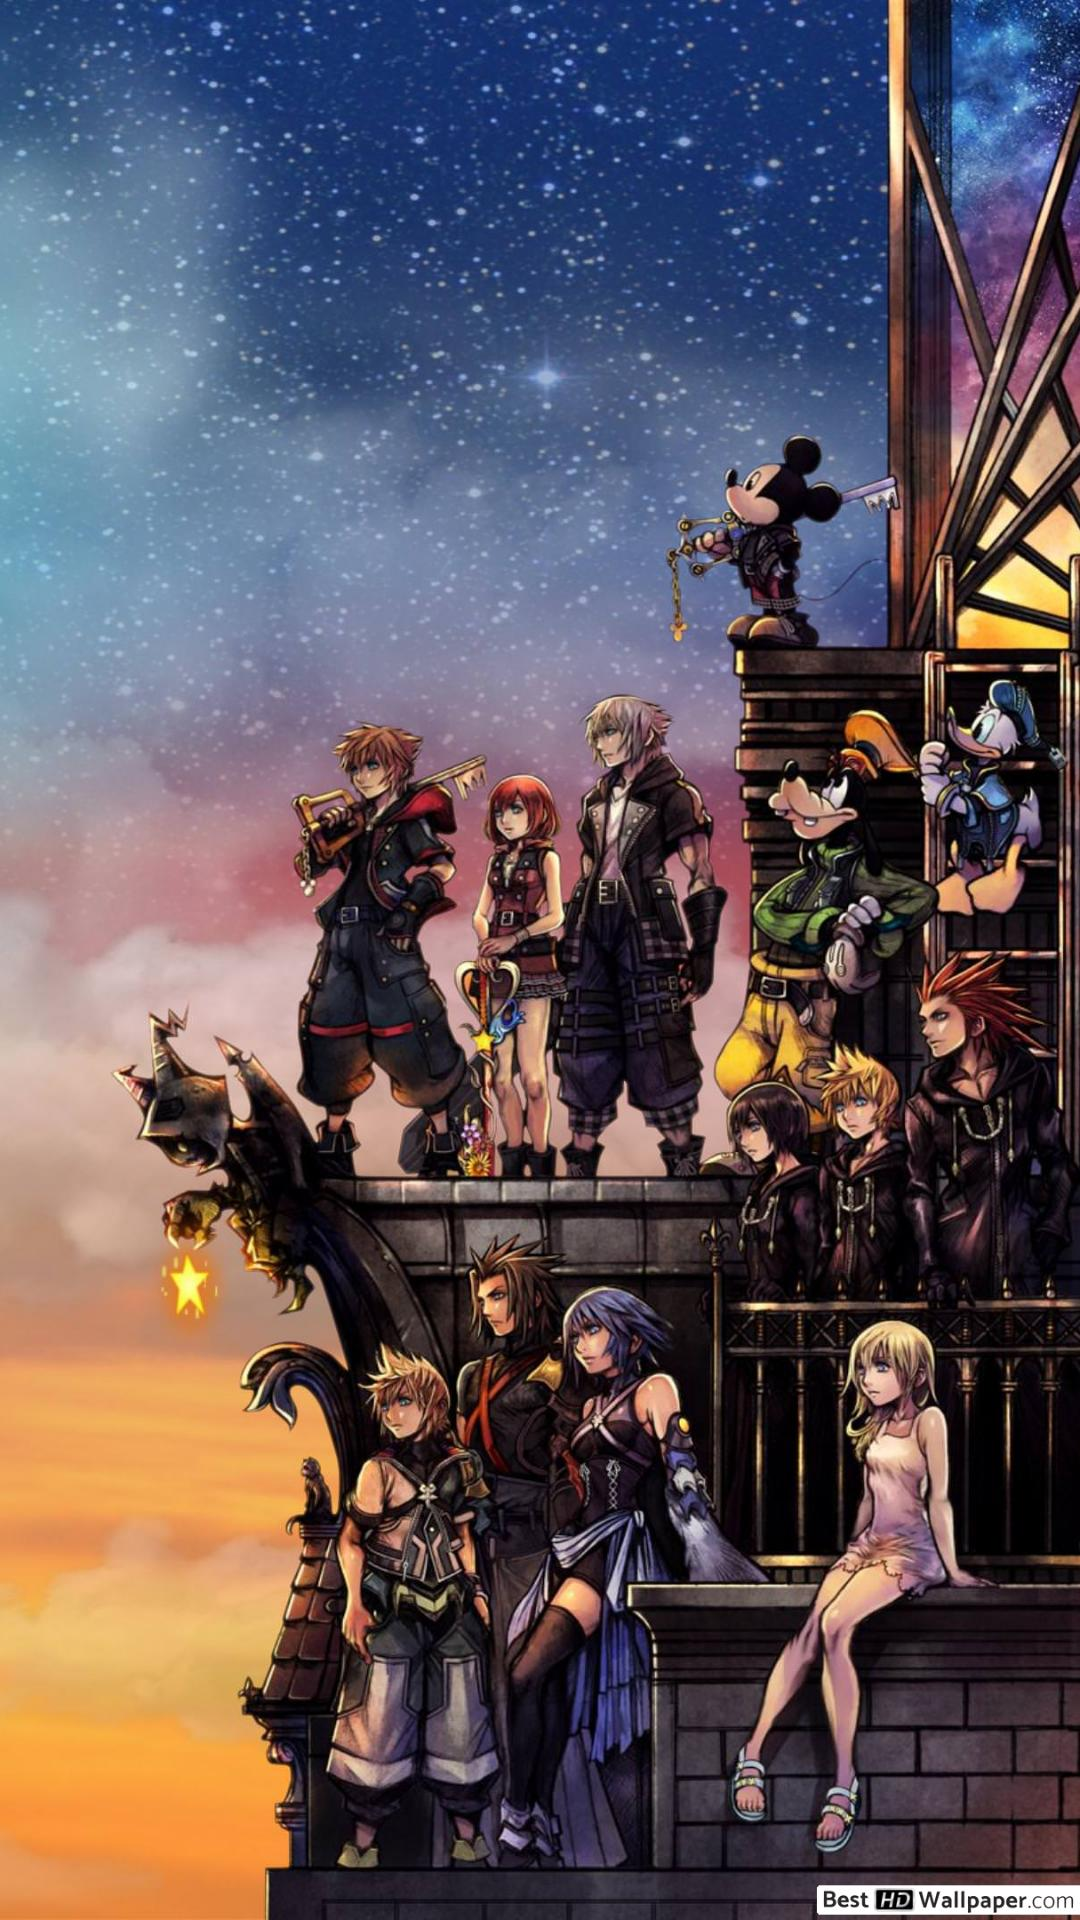 1080 X 1920 Wallpaper Kingdom Hearts , HD Wallpaper & Backgrounds